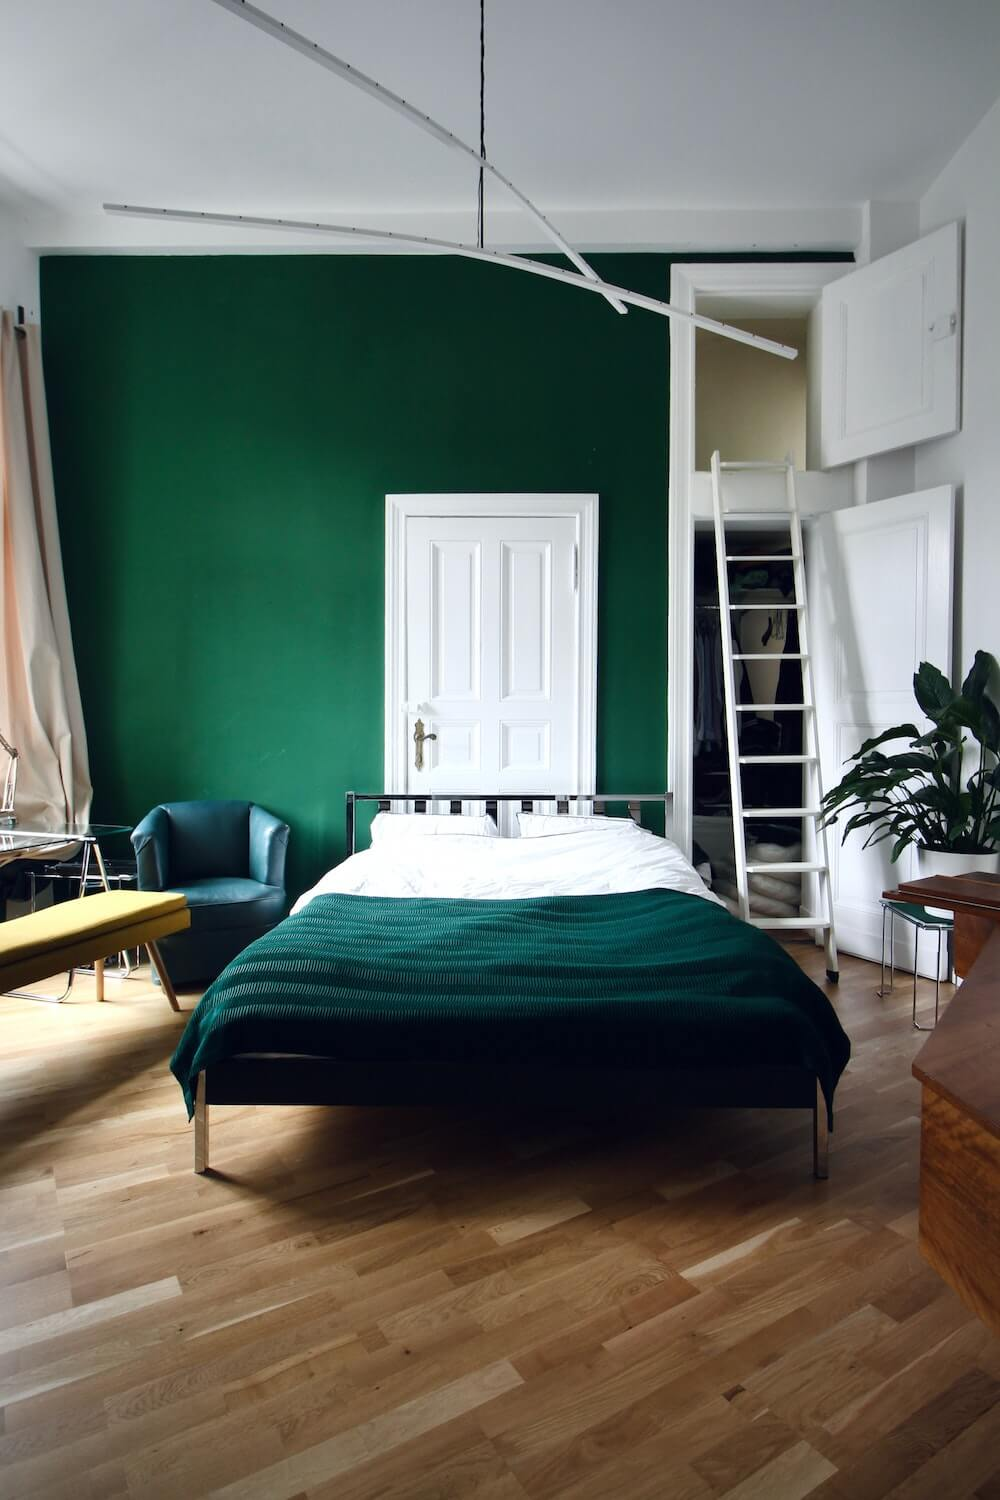 Interior and real estate Photography of a green bedroom with large hanging lamps